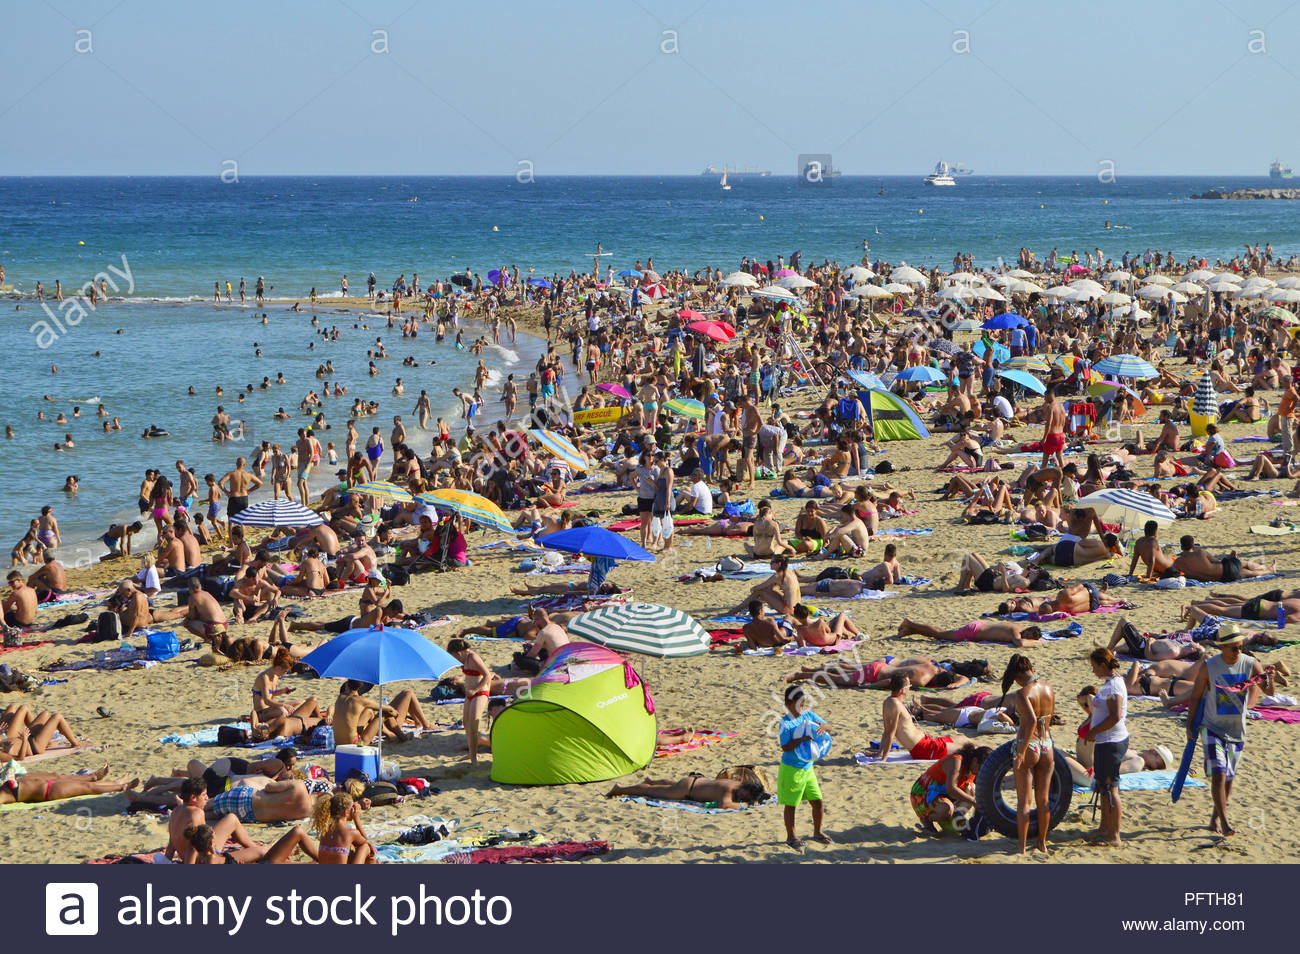 Crowded beach of Barceloneta, holidaymakers by the Mediterranean sea on hot summer day in Barcelona Spain Europe. - Stock Image